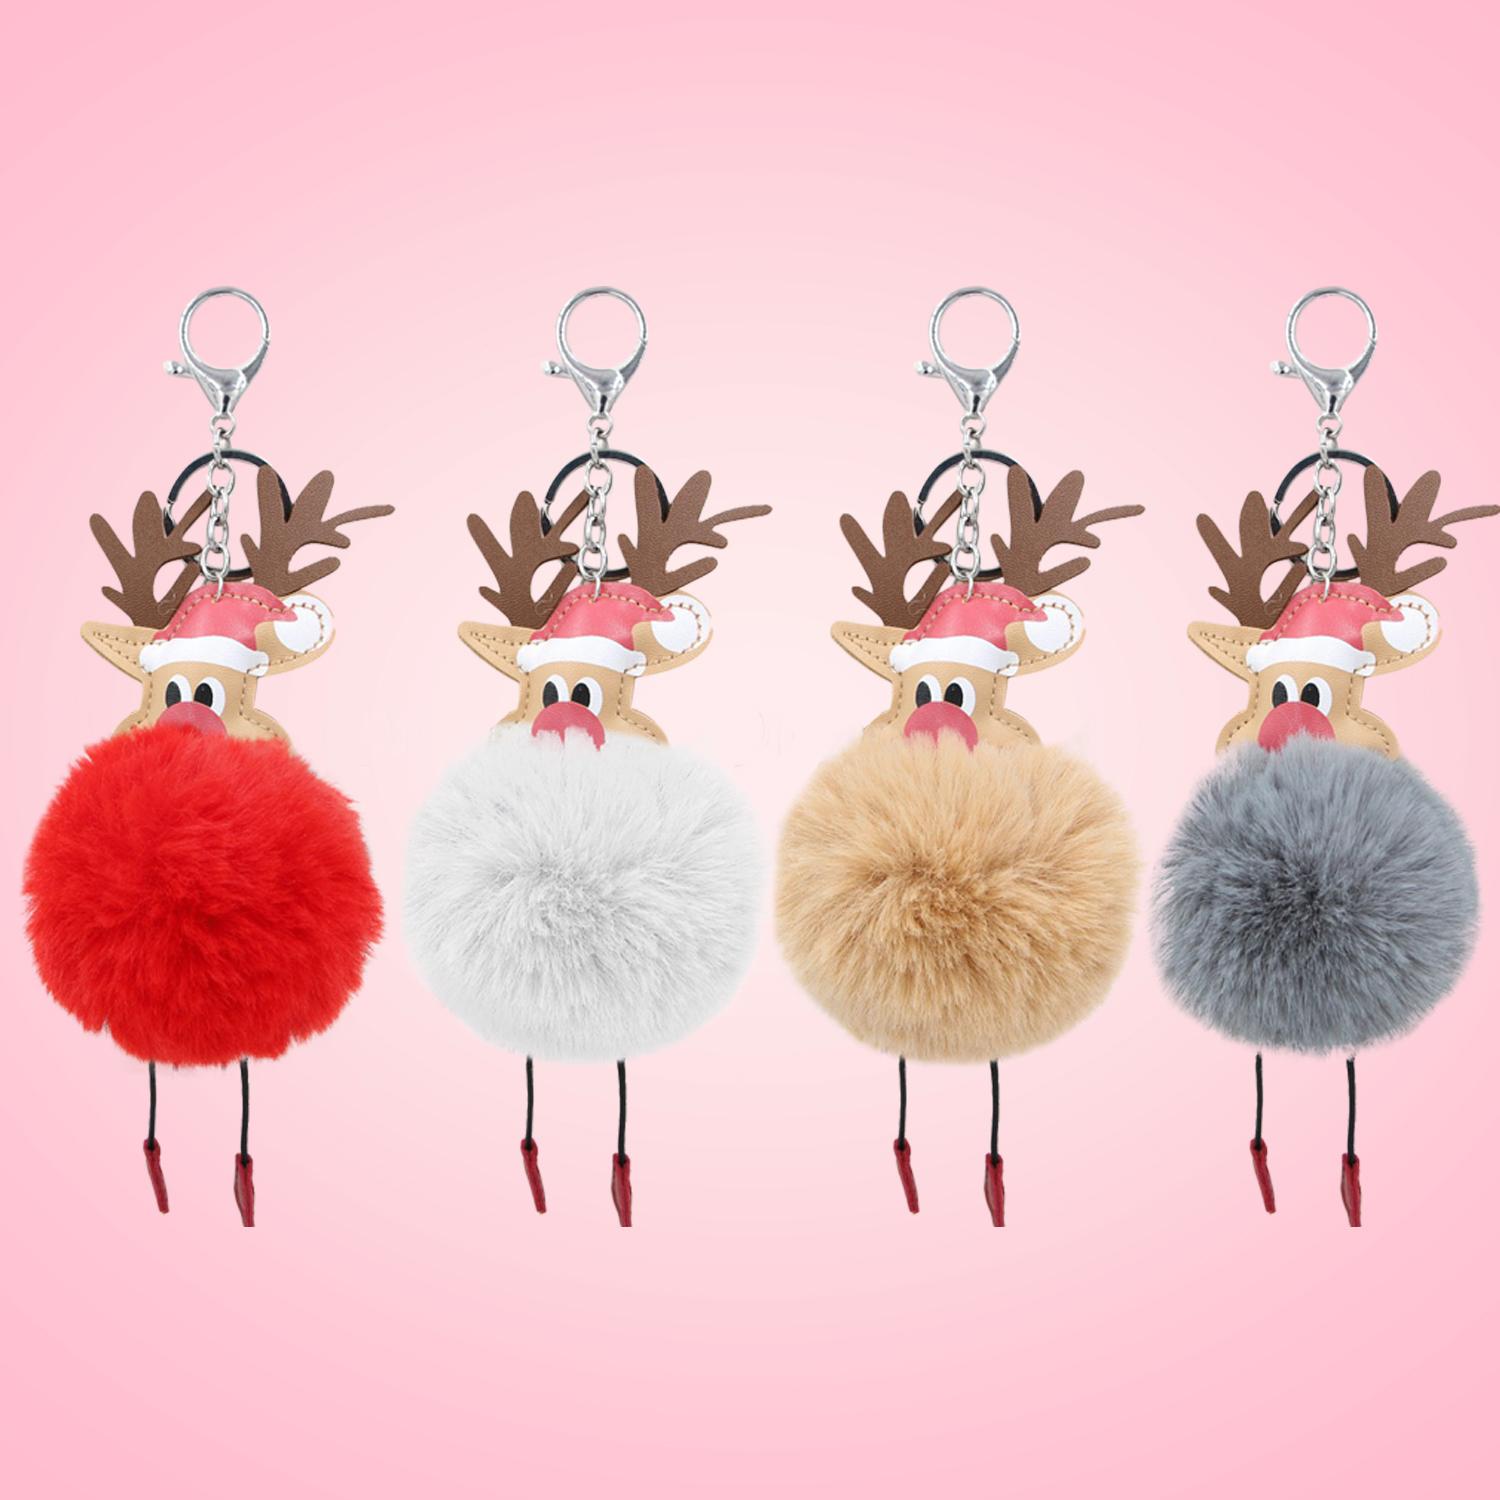 Cute Kawaii Christmas Reindeer Fur Ball Keychain Fluffy Pompon Deer <font><b>Key</b></font> Ring <font><b>Chain</b></font> <font><b>Plush</b></font> Elk Hanging Pendant <font><b>Key</b></font> <font><b>Chain</b></font> <font><b>Toy</b></font> image